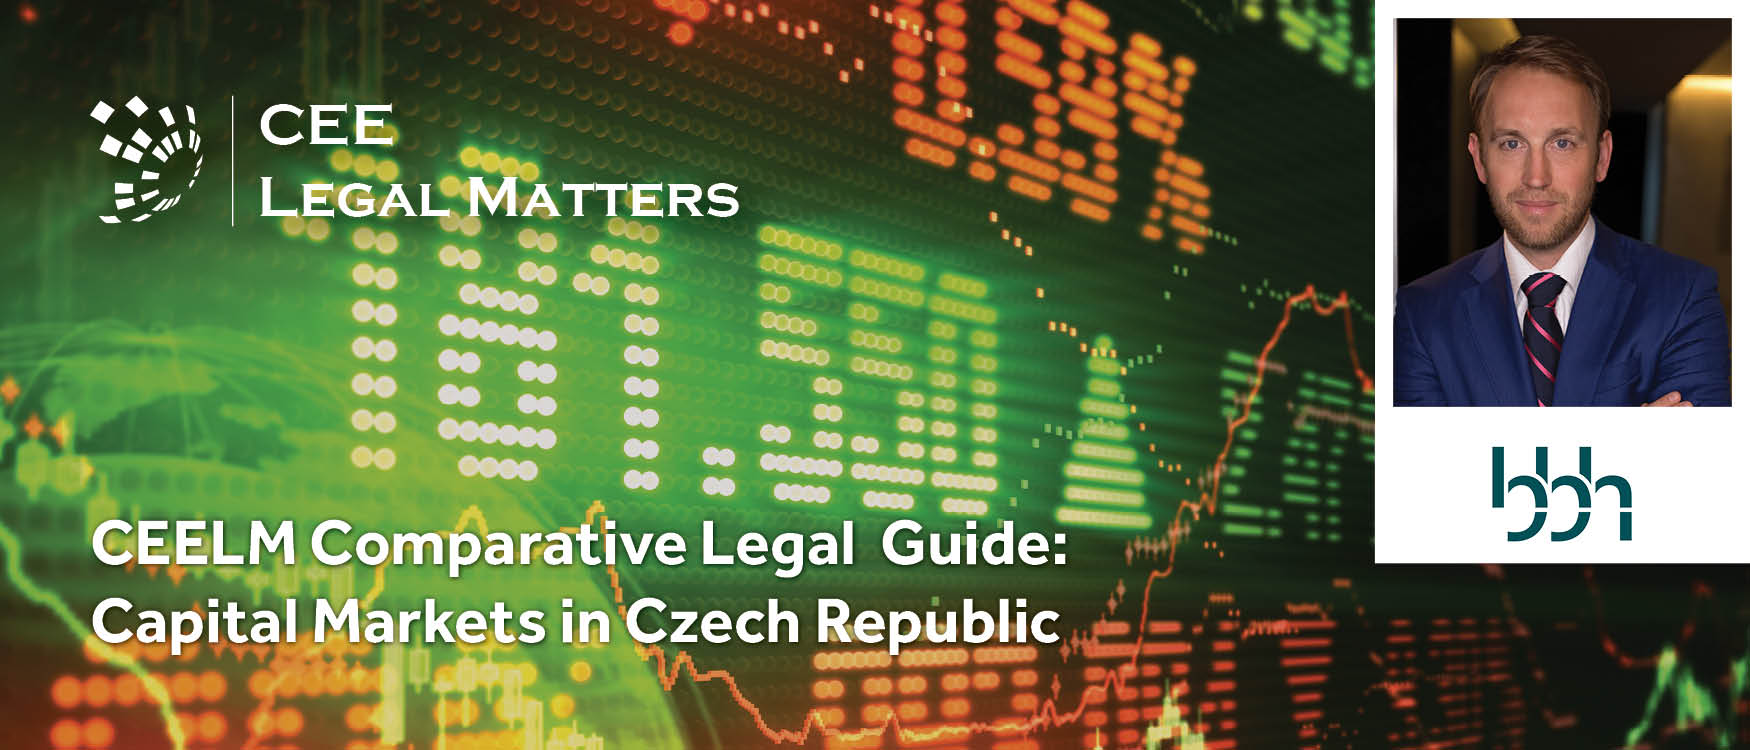 Capital Markets in Czechia